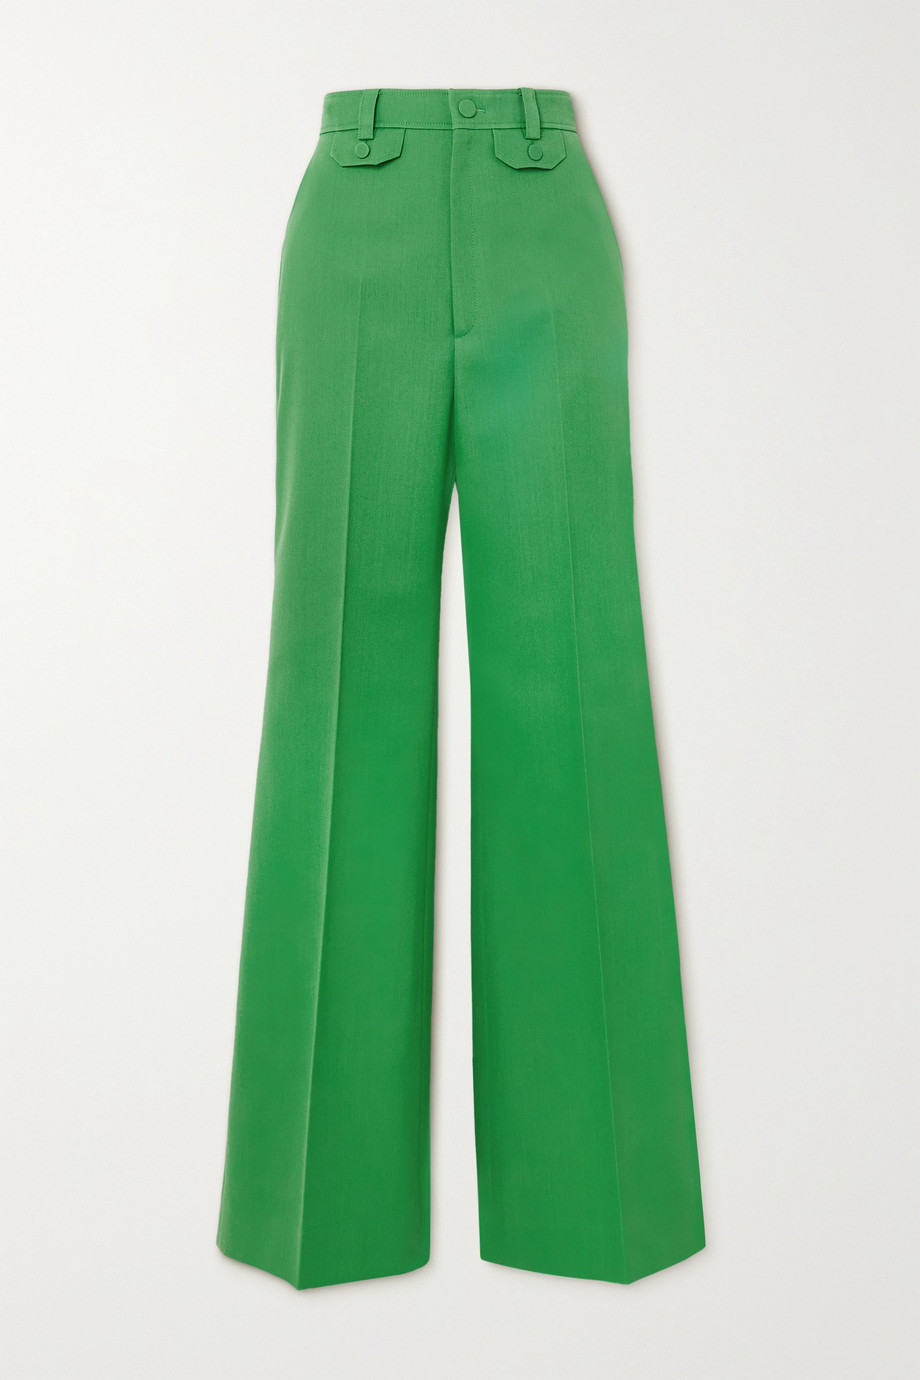 Gucci Twill flared pants